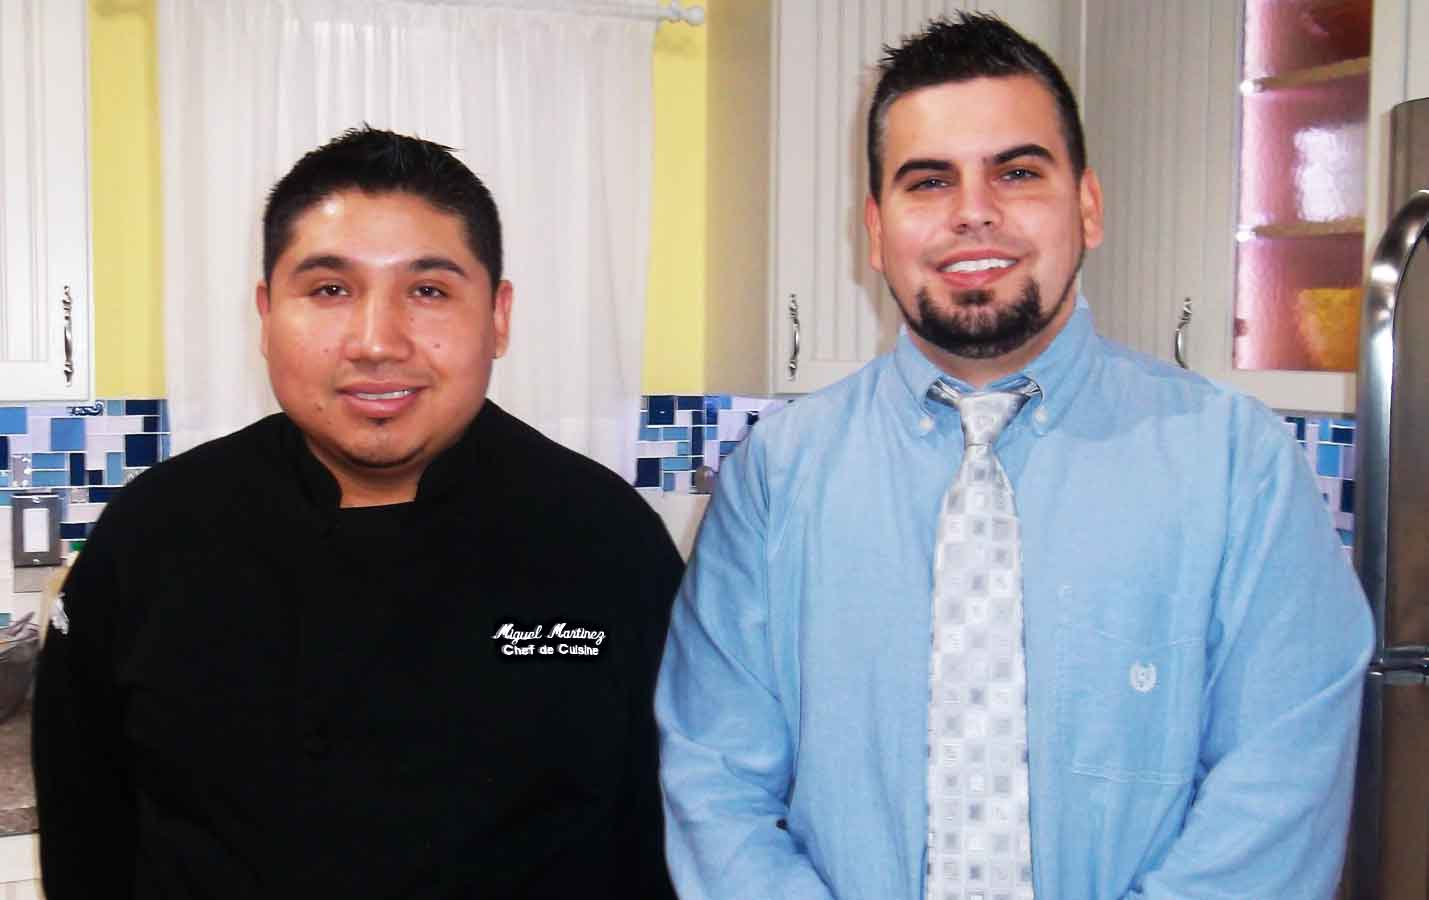 recipes from the chef s kitchen show  miguel martinez kitchen manager left derek smith assistant general manager right